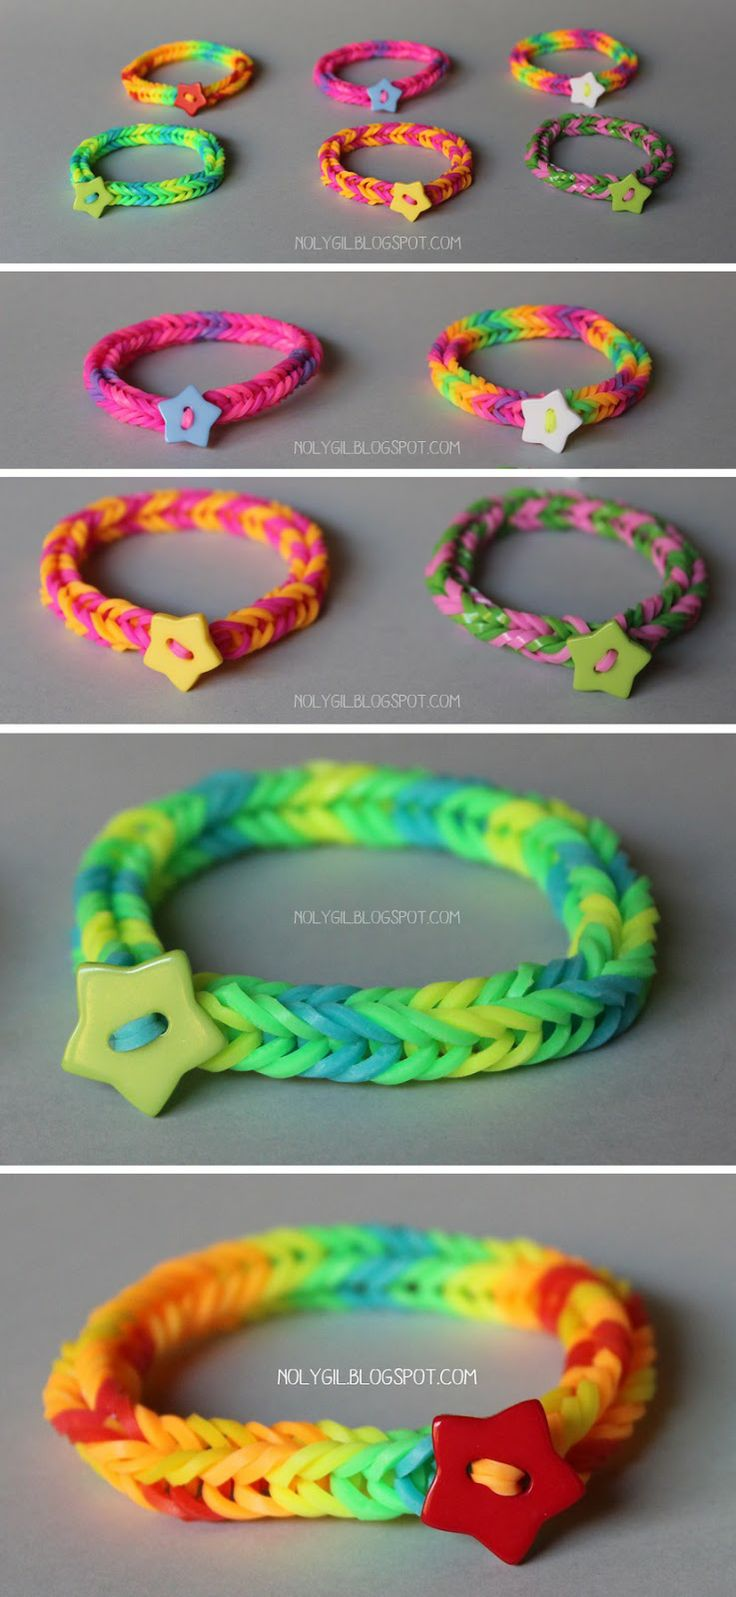 DIY Tutorial Rubber bands Colorful with button NolyGil.blogspot.com Detailed photo tutorial on site #rainbowloom